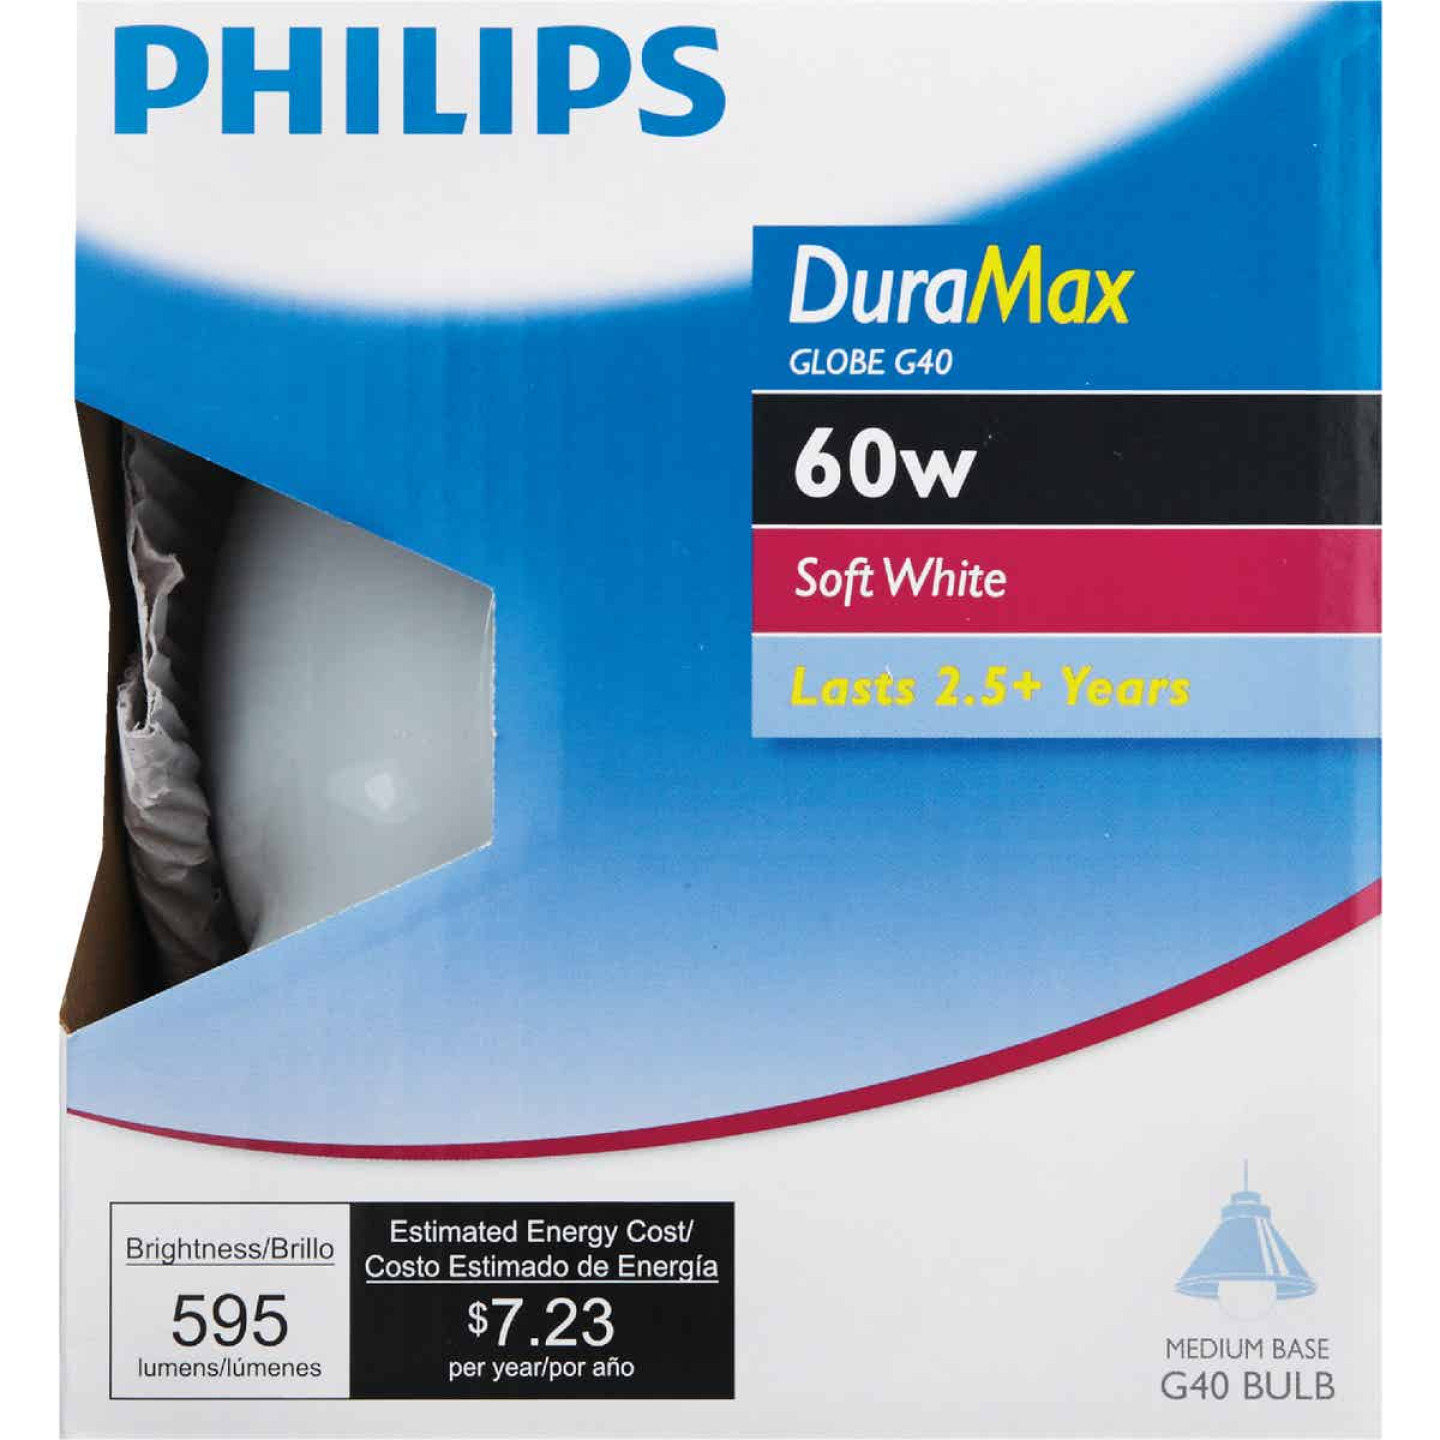 Philips DuraMax 60W Frosted Soft White Medium Base G40 Incandescent Globe Light Bulb Image 2